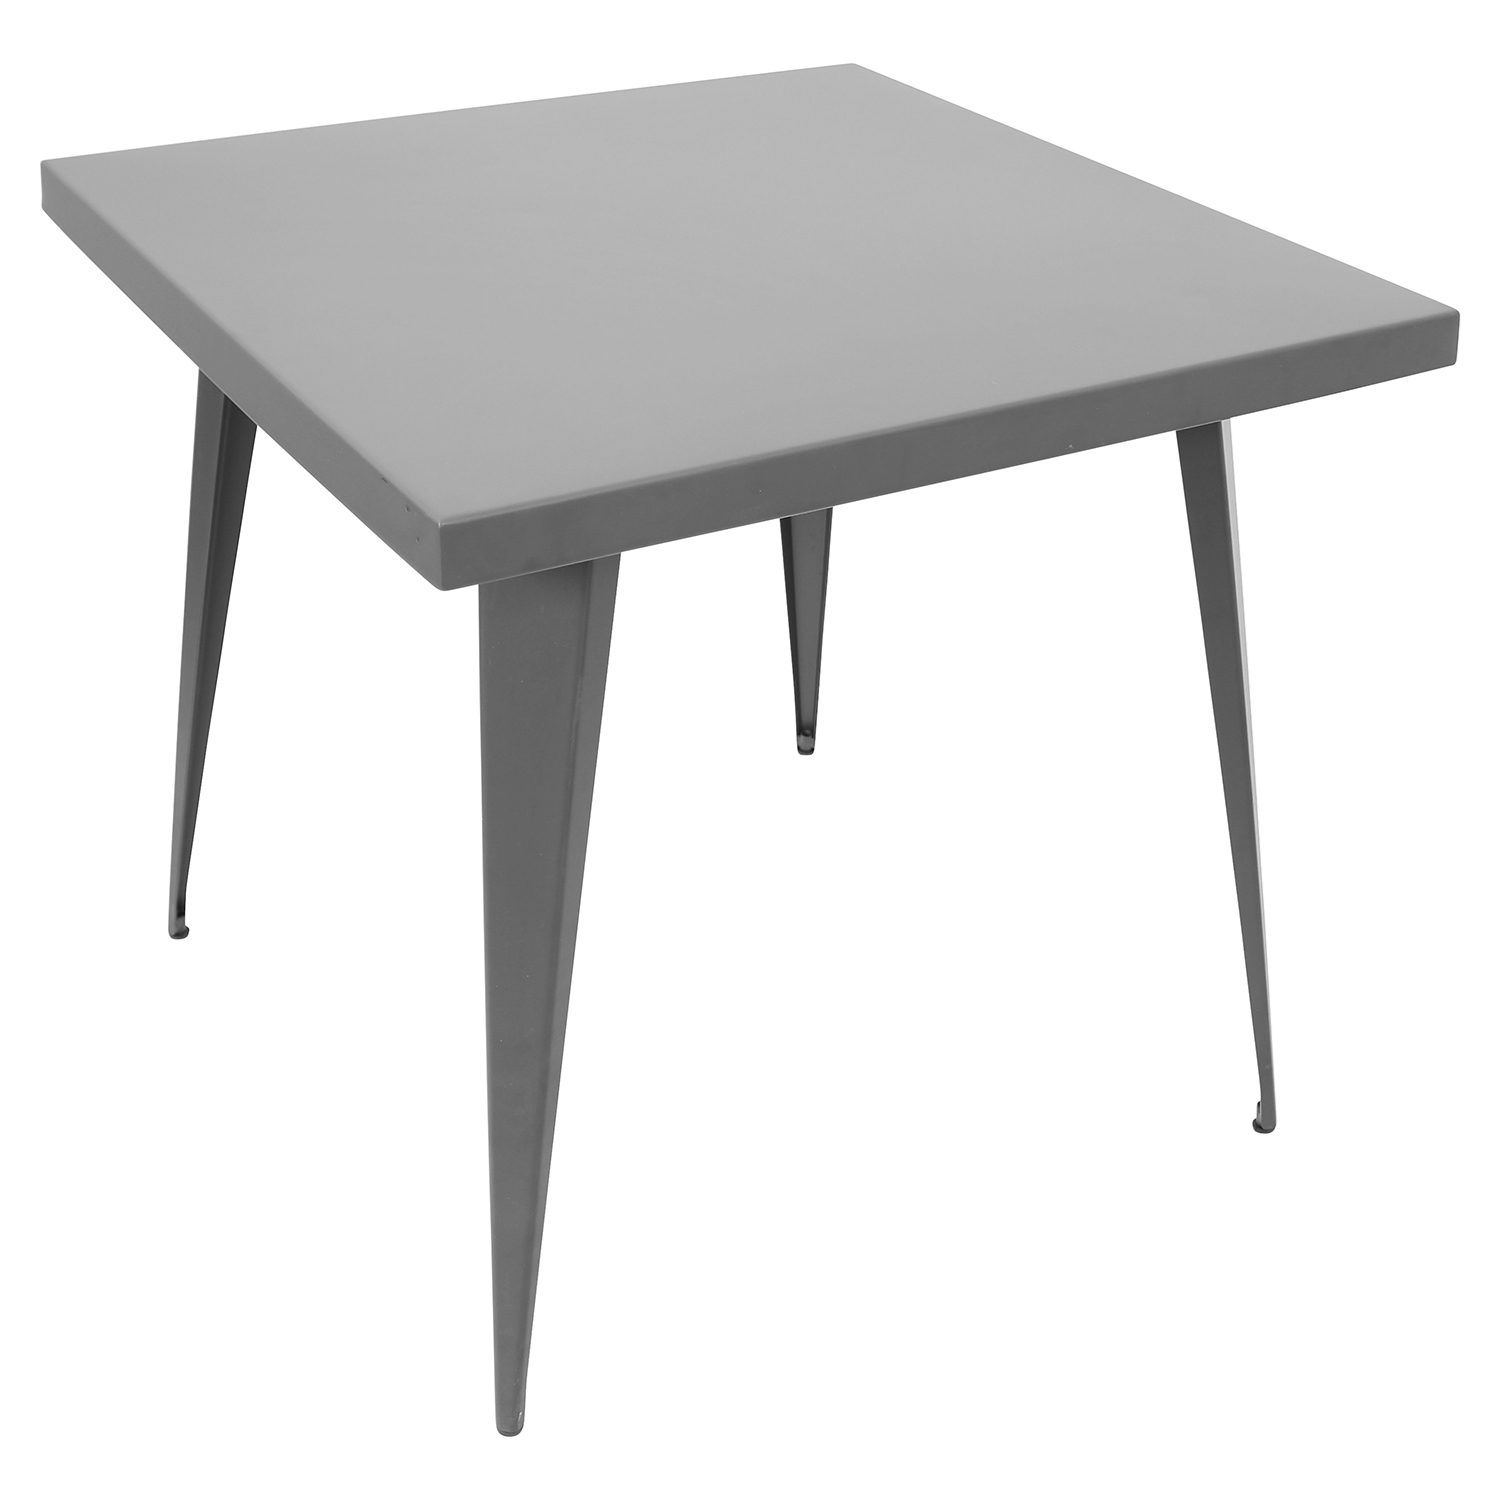 Austin Square Dining Table - Matte Gray : DCG Stores